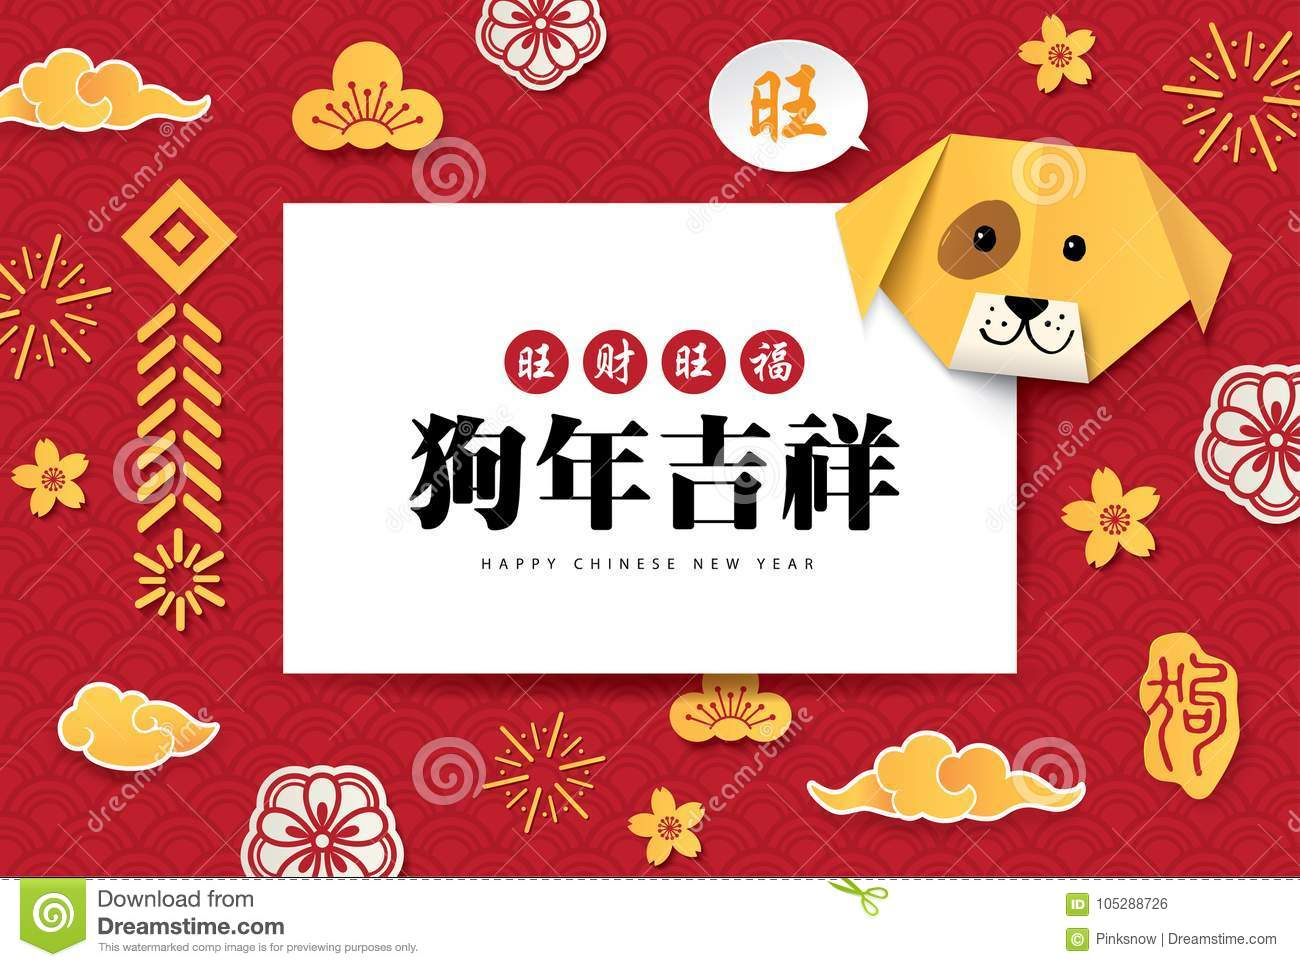 2018 chinese new year greeting card design with origami dog stock 2018 chinese new year greeting card design with origami dog elements modern m4hsunfo